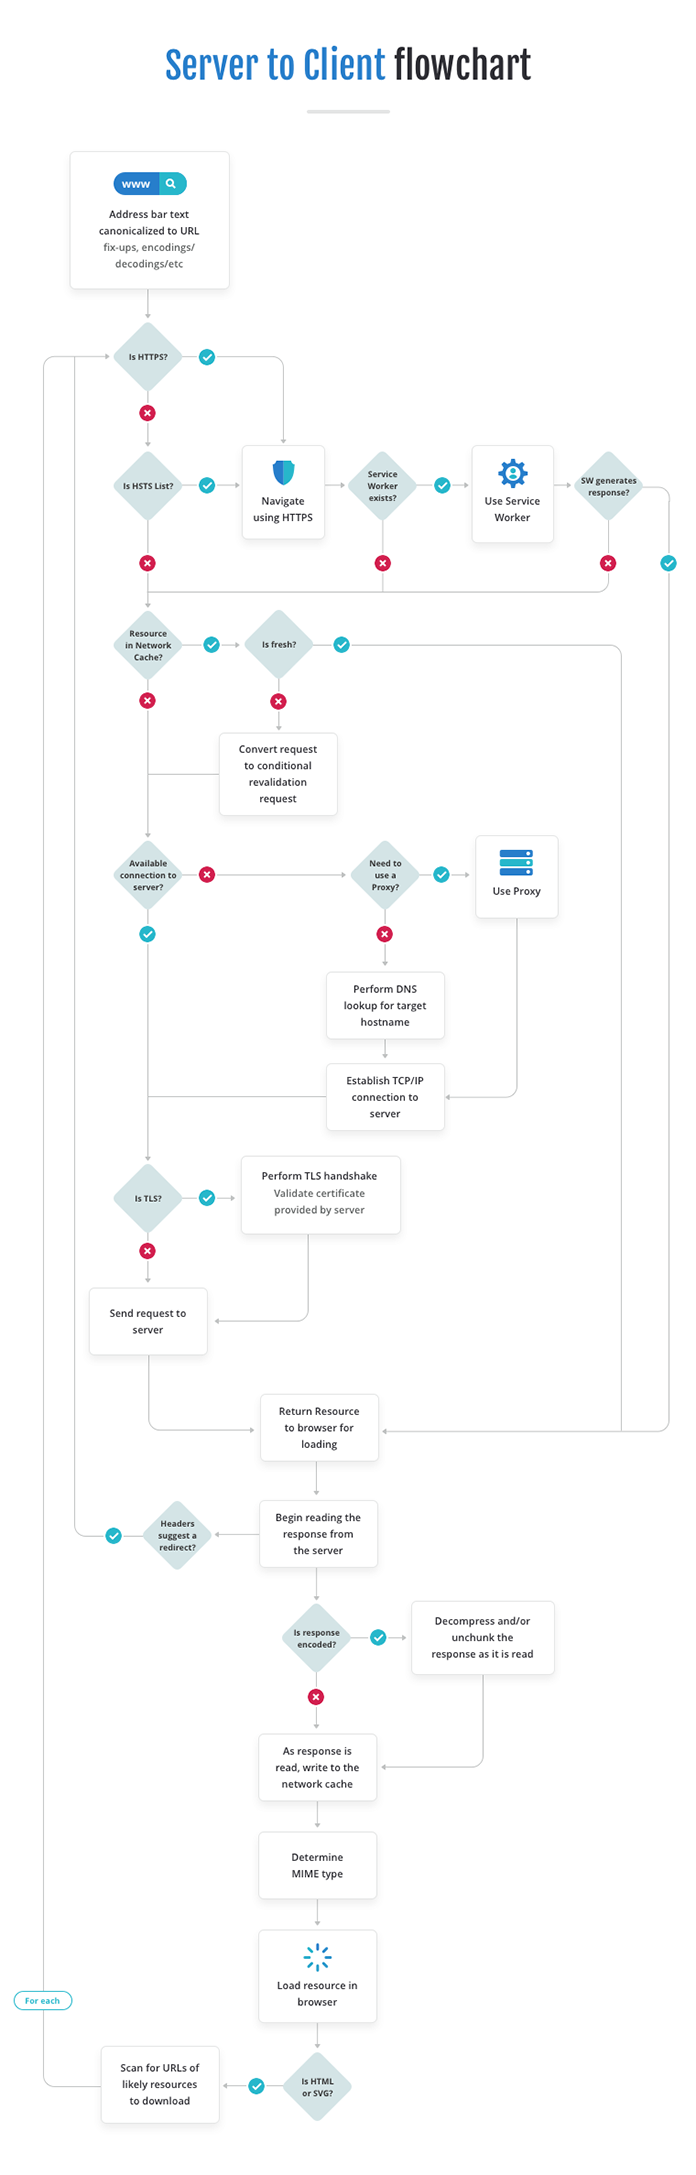 Flowchart showing the path from server to client